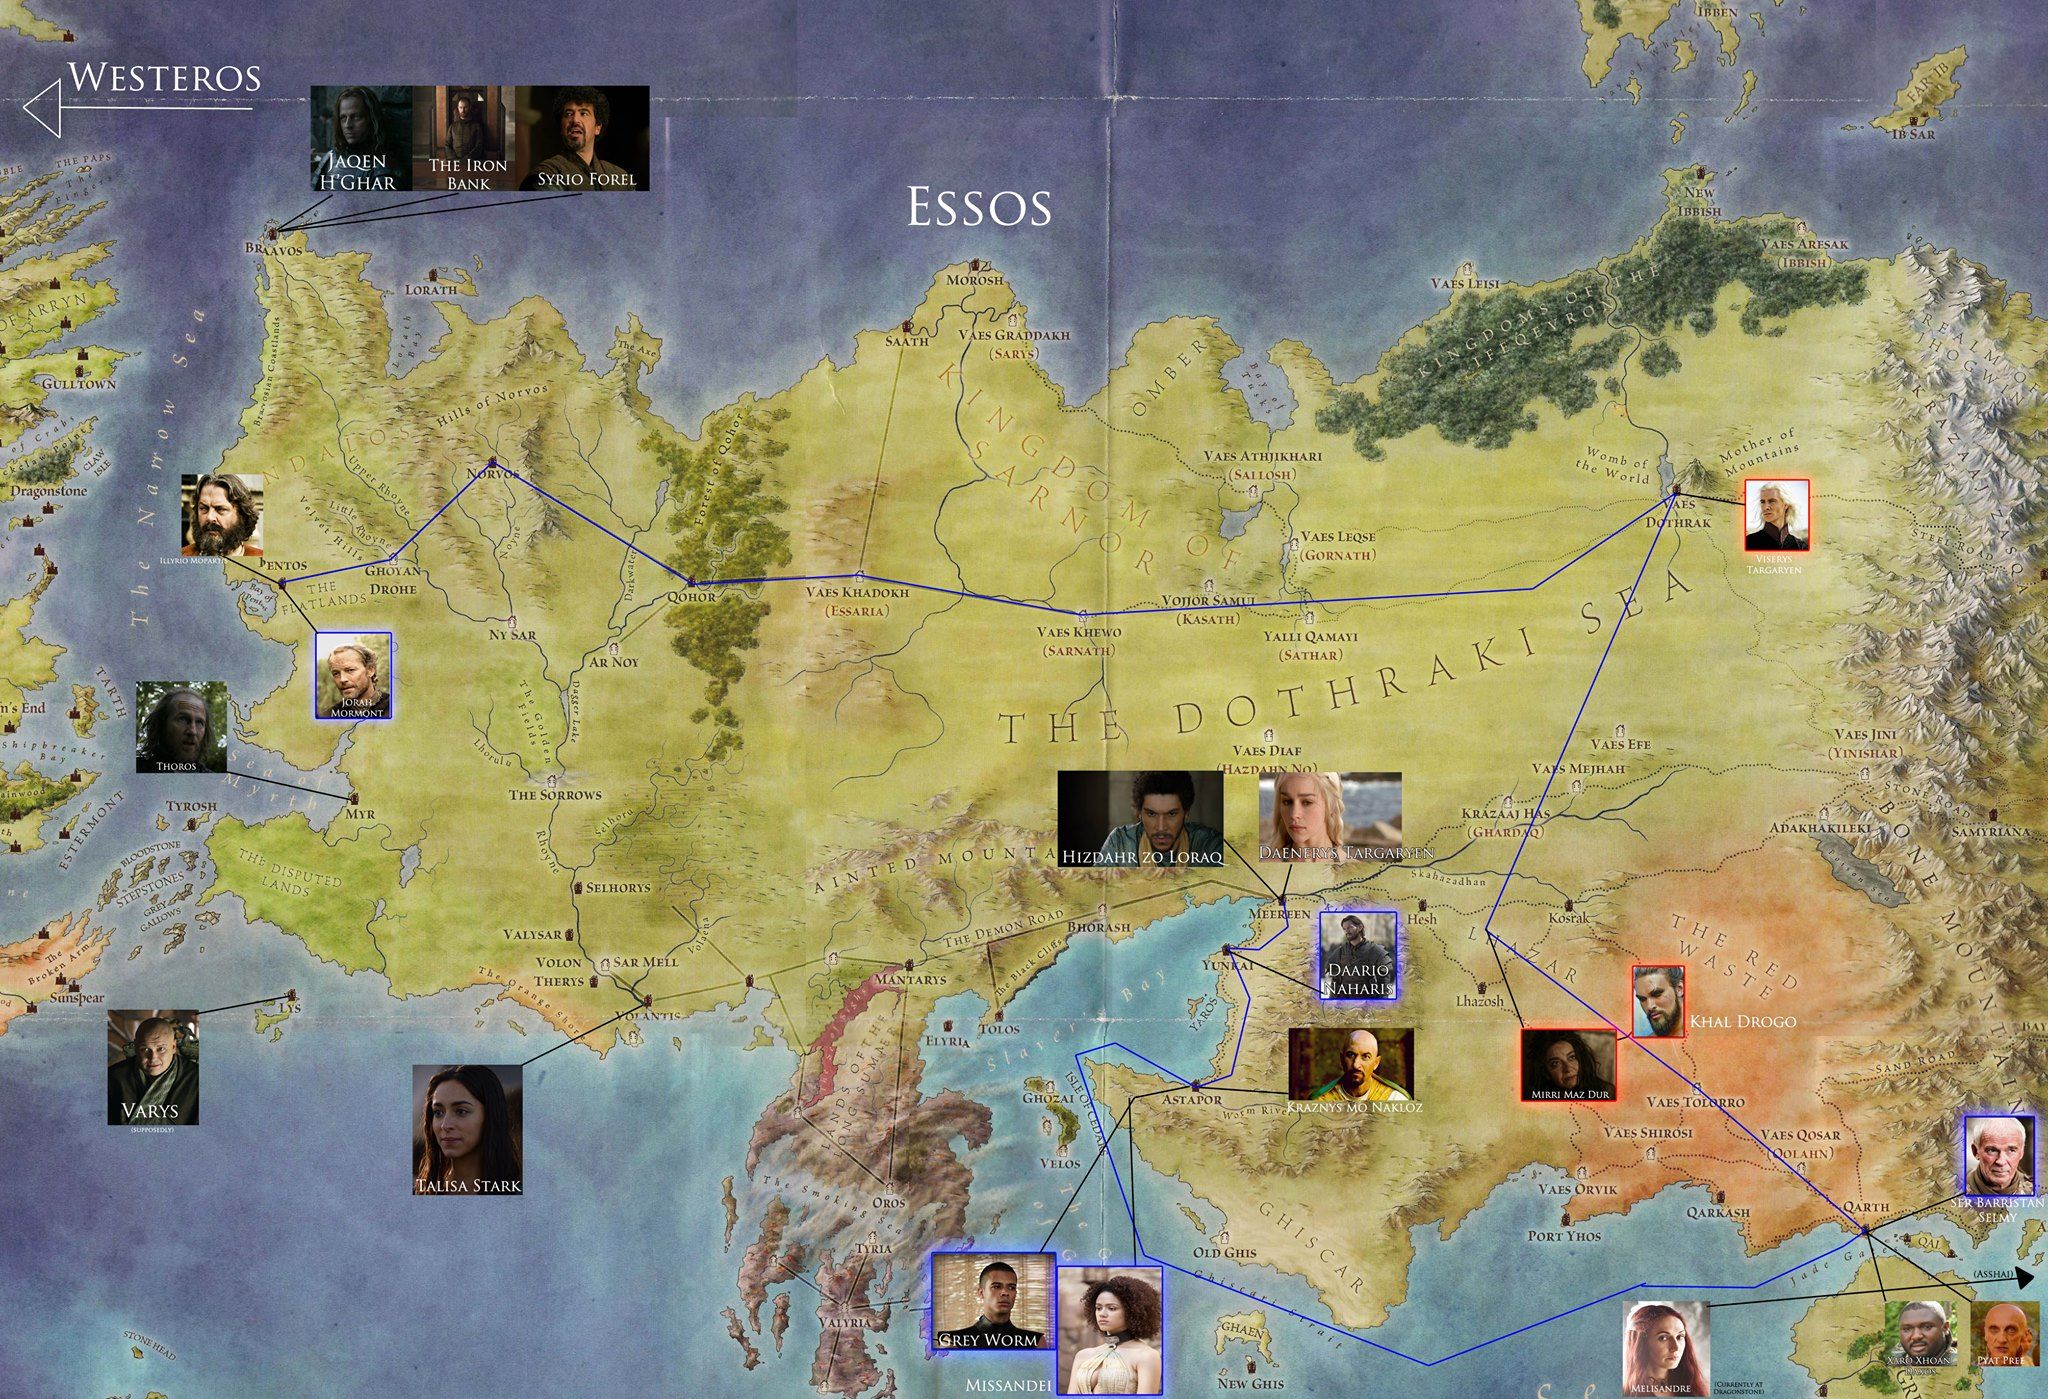 2048x1399 g 717ko game of thrones pinterest explore drinking milk game of thrones and more gumiabroncs Choice Image